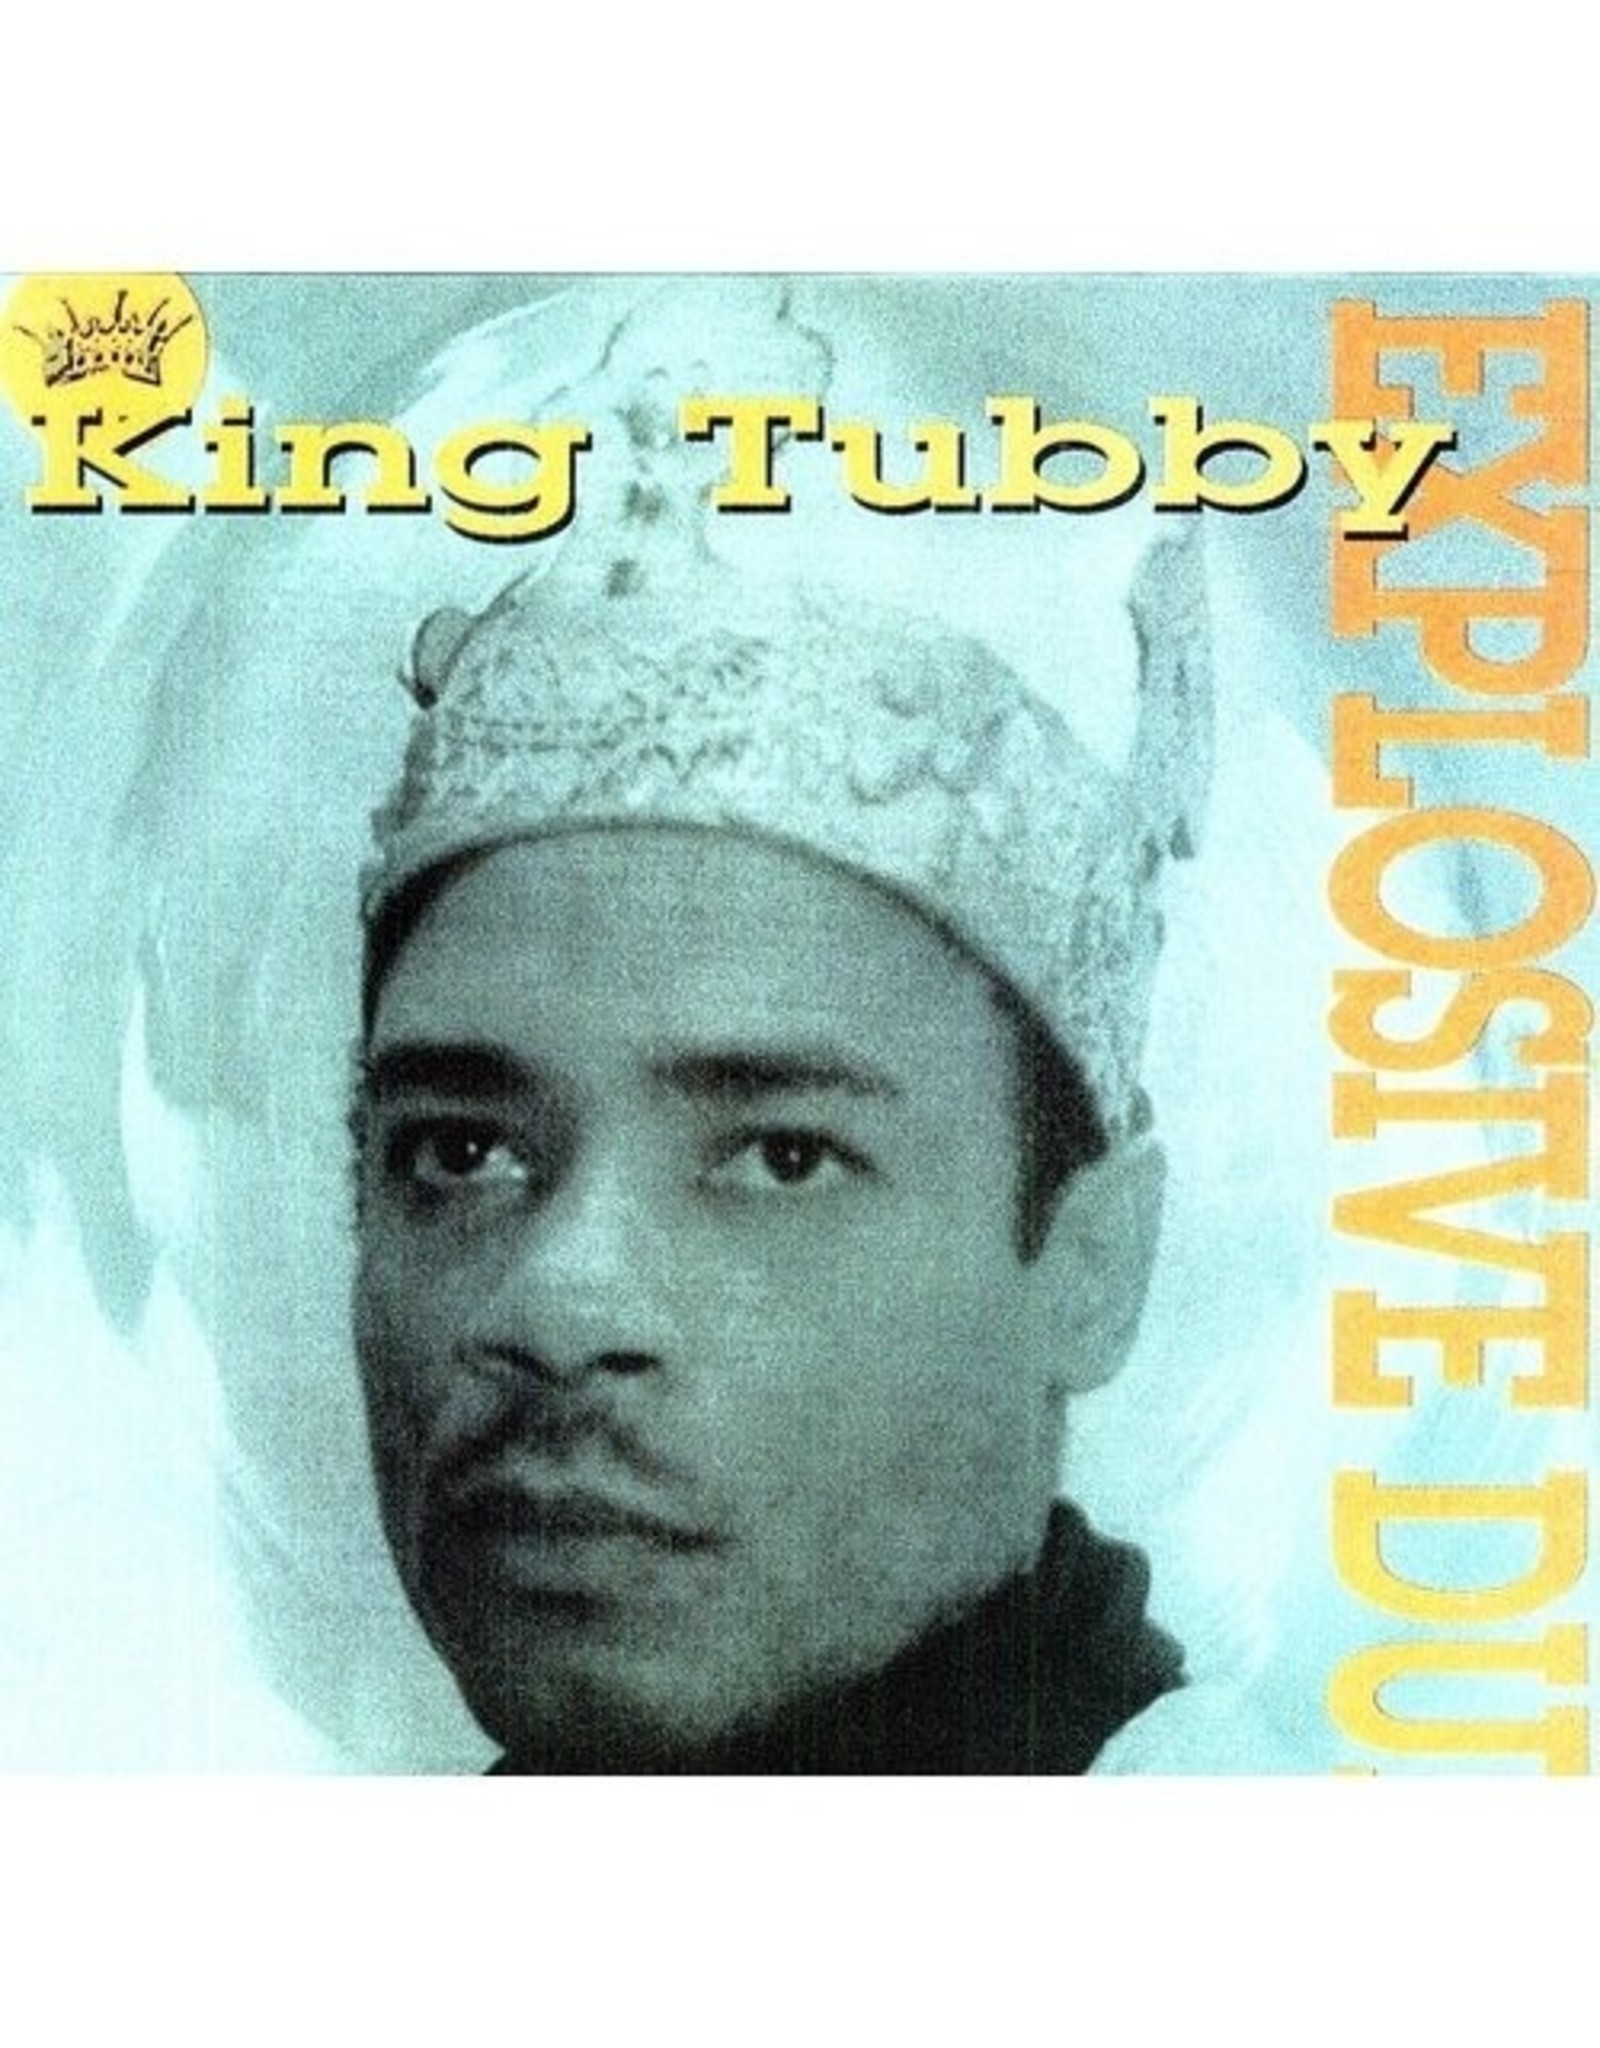 New Vinyl King Tubby - Explosive Dub LP